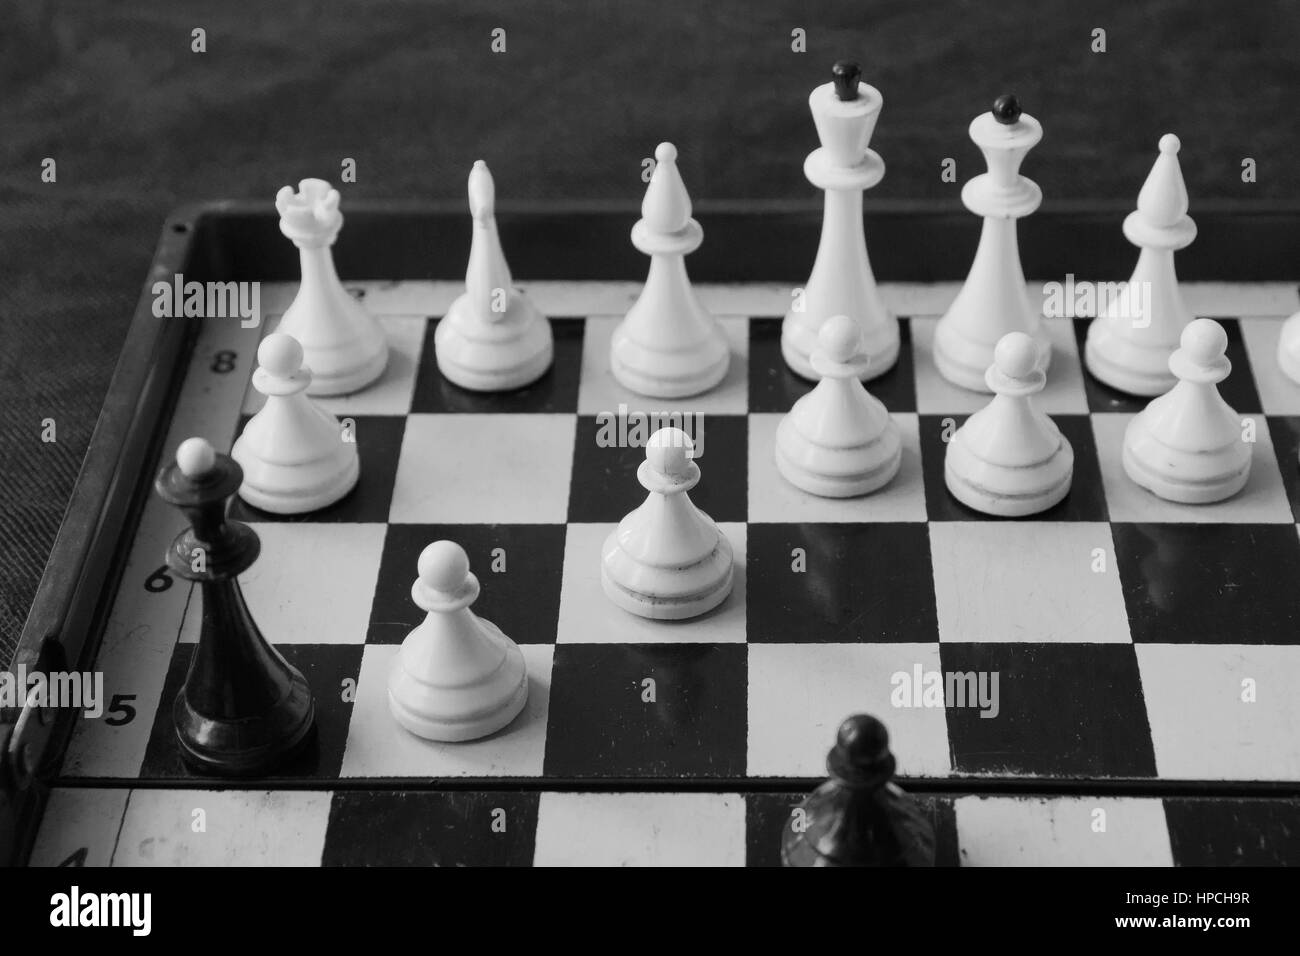 The game of chess. The combination of children's math. - Stock Image